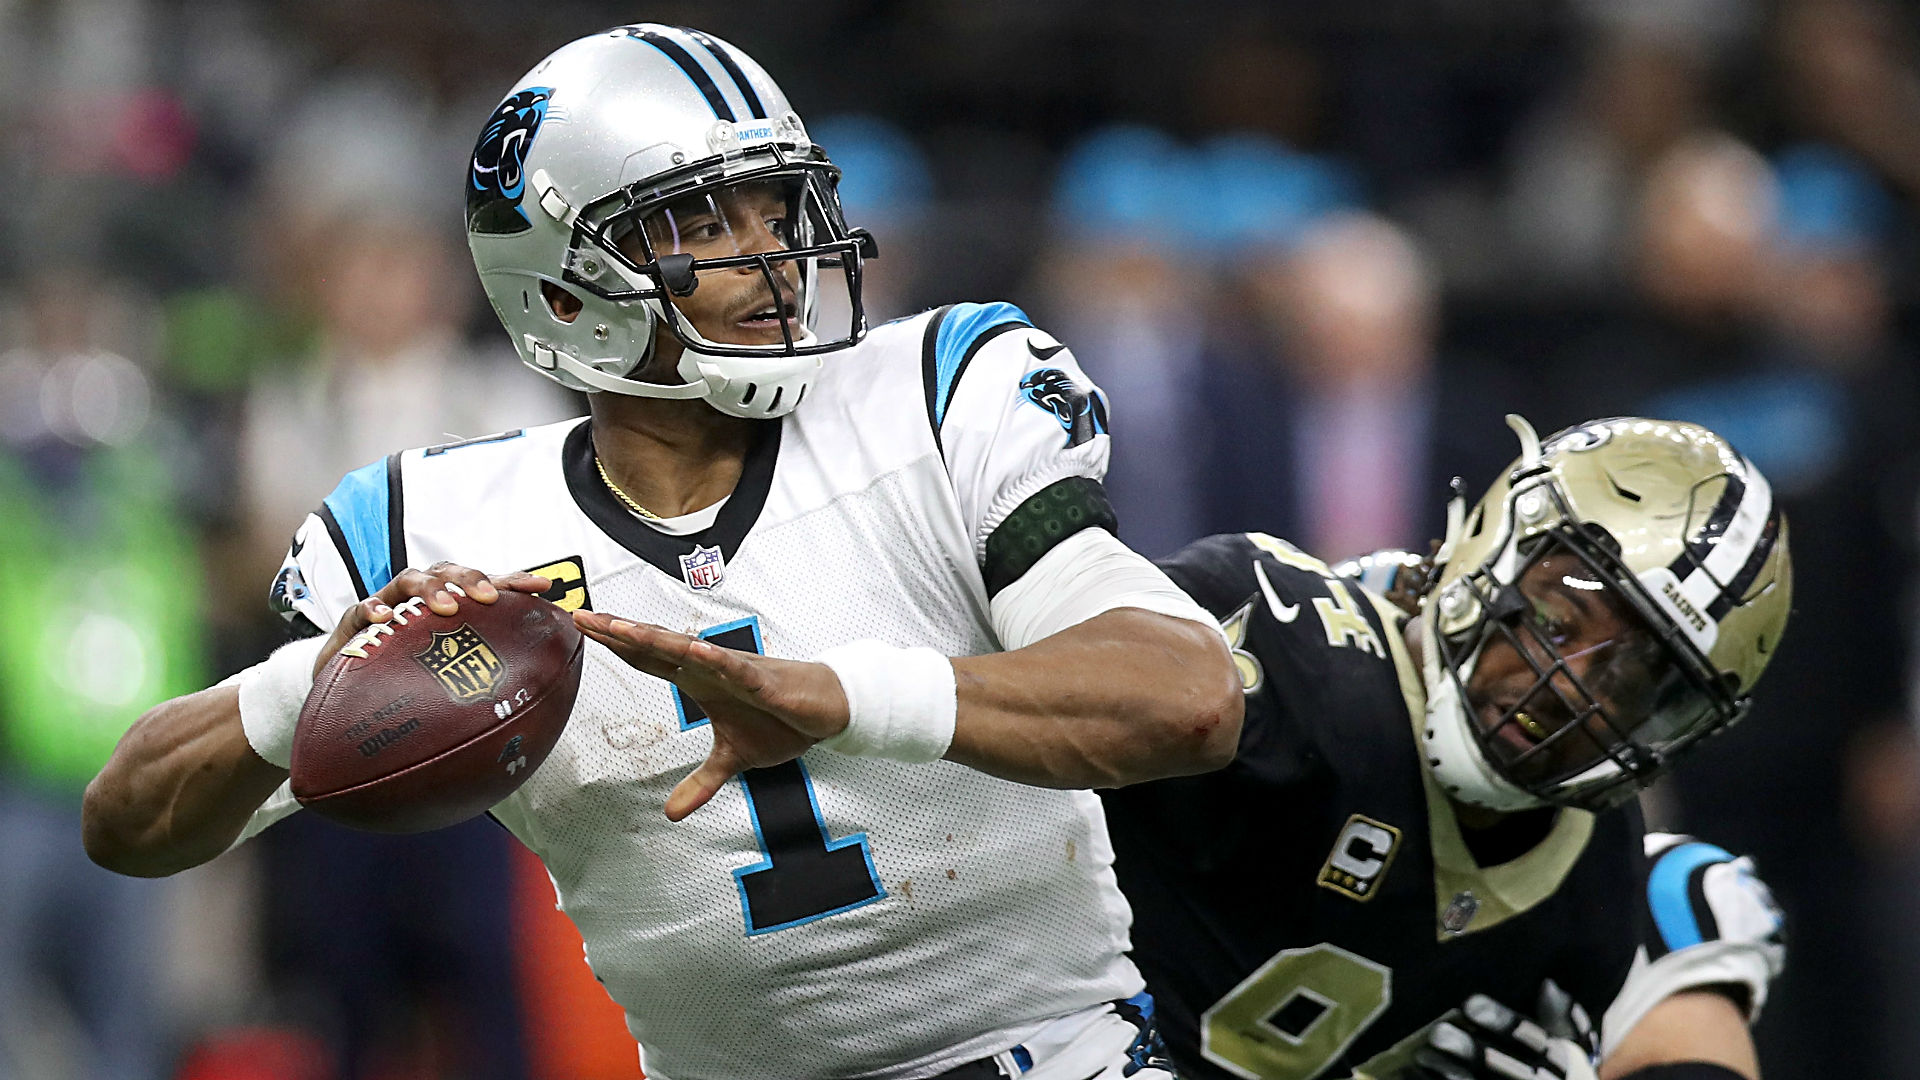 Norv Turner wants to 'eliminate the peaks and valleys' in Cam Newton's game